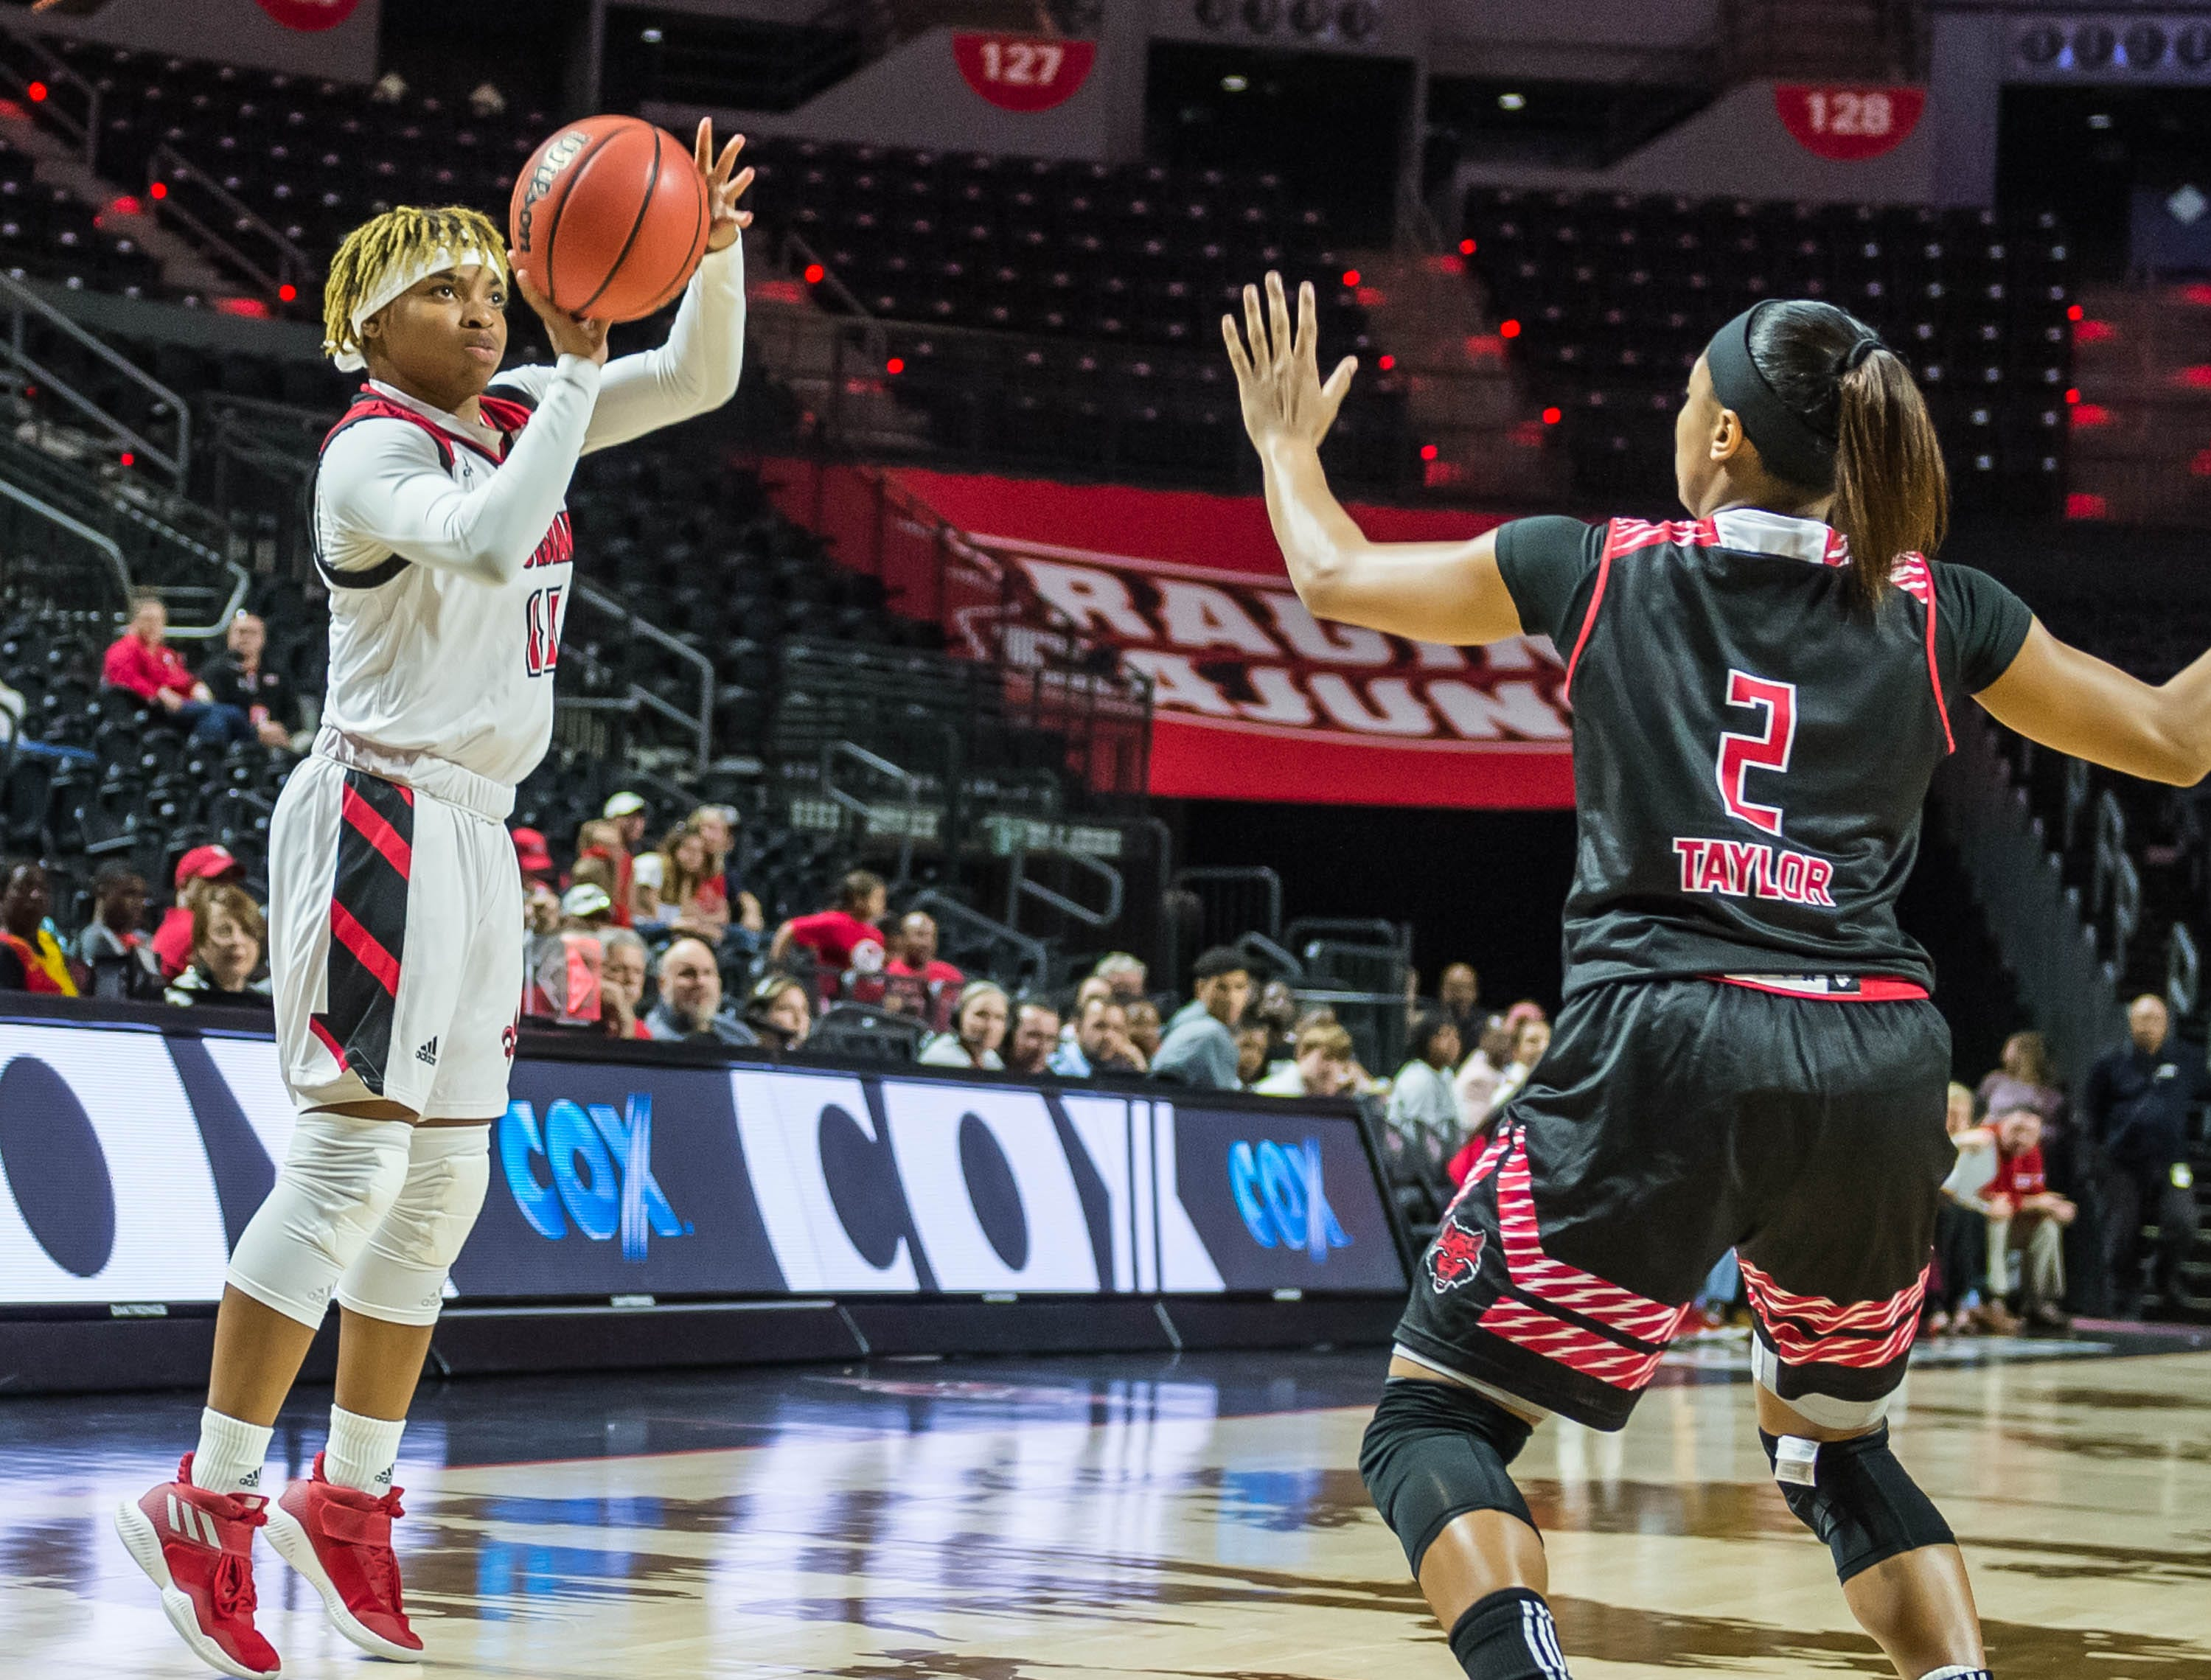 Cajuns guard Diamond Morrison (15) with the 3-point attempt as the Cajuns women's basketball team plays the Arkansas State Red Wolves at the Cajundome on Saturday, March 9, 2019.